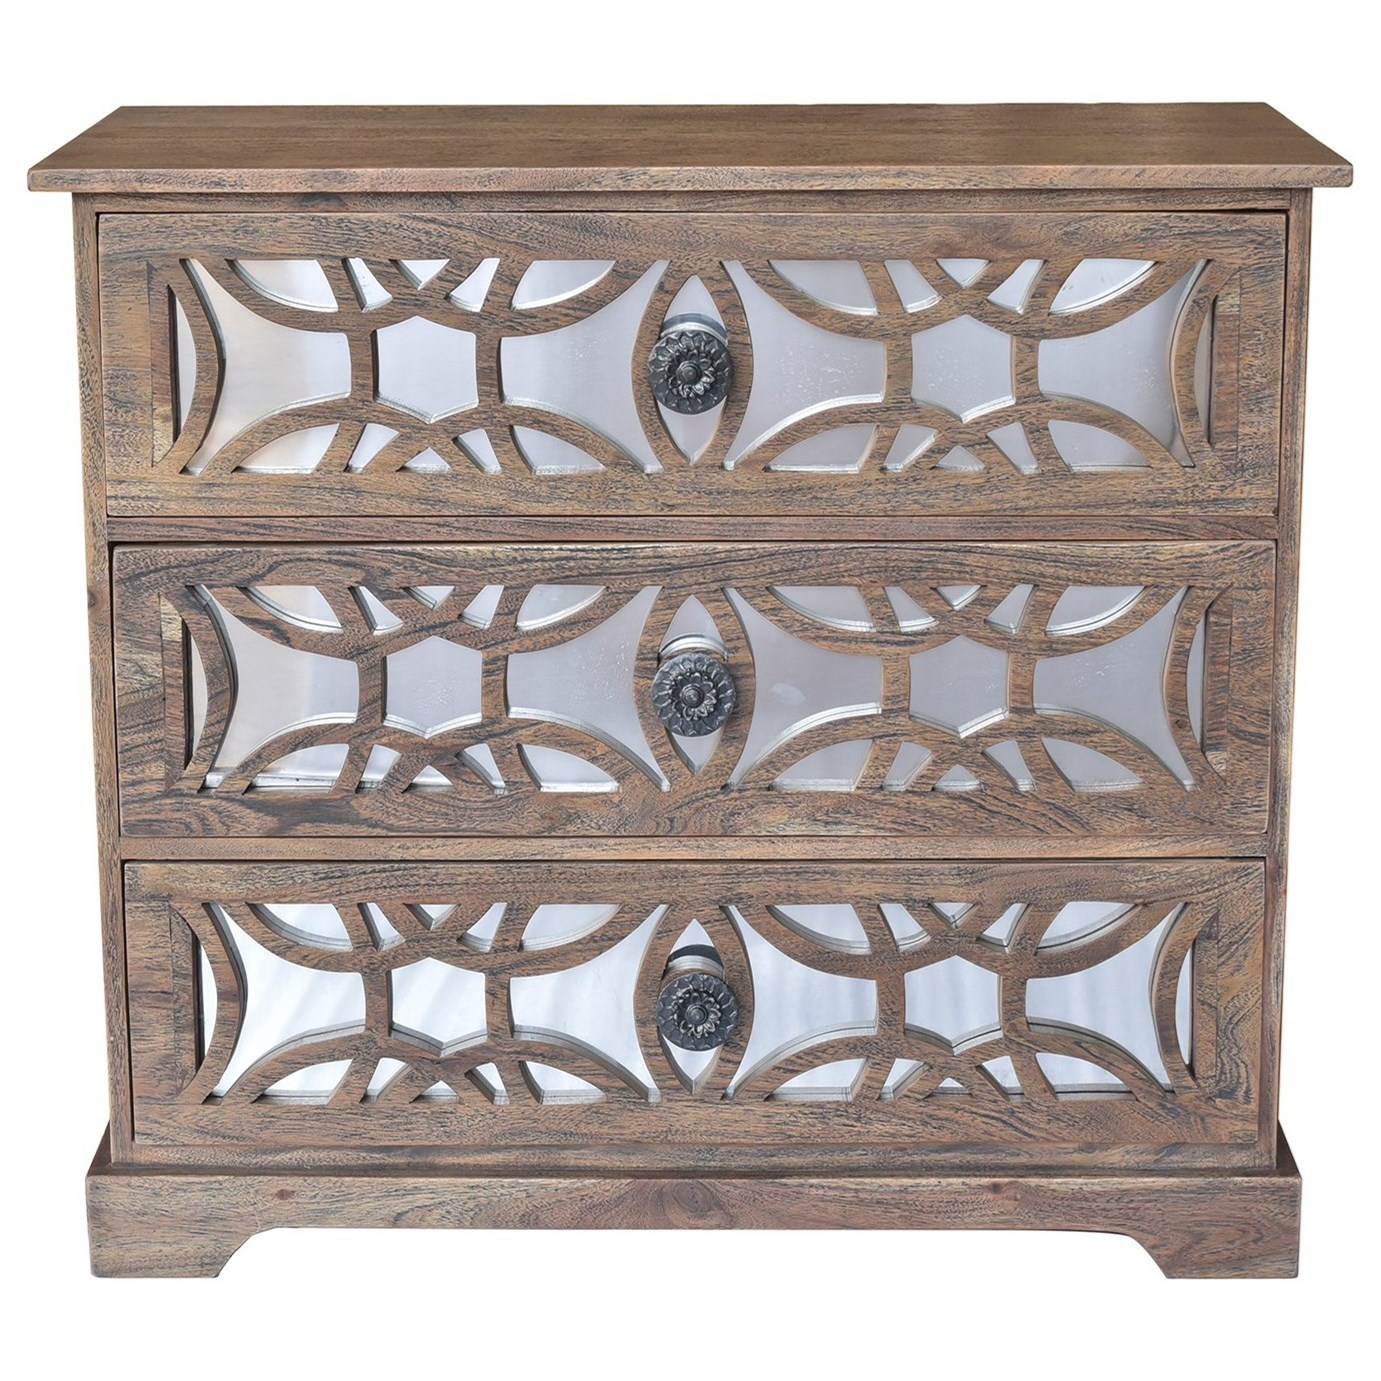 Accent Furniture Bengal Manor Dark Mango Wood 3 Drawer Fretwo by Crestview Collection at Factory Direct Furniture